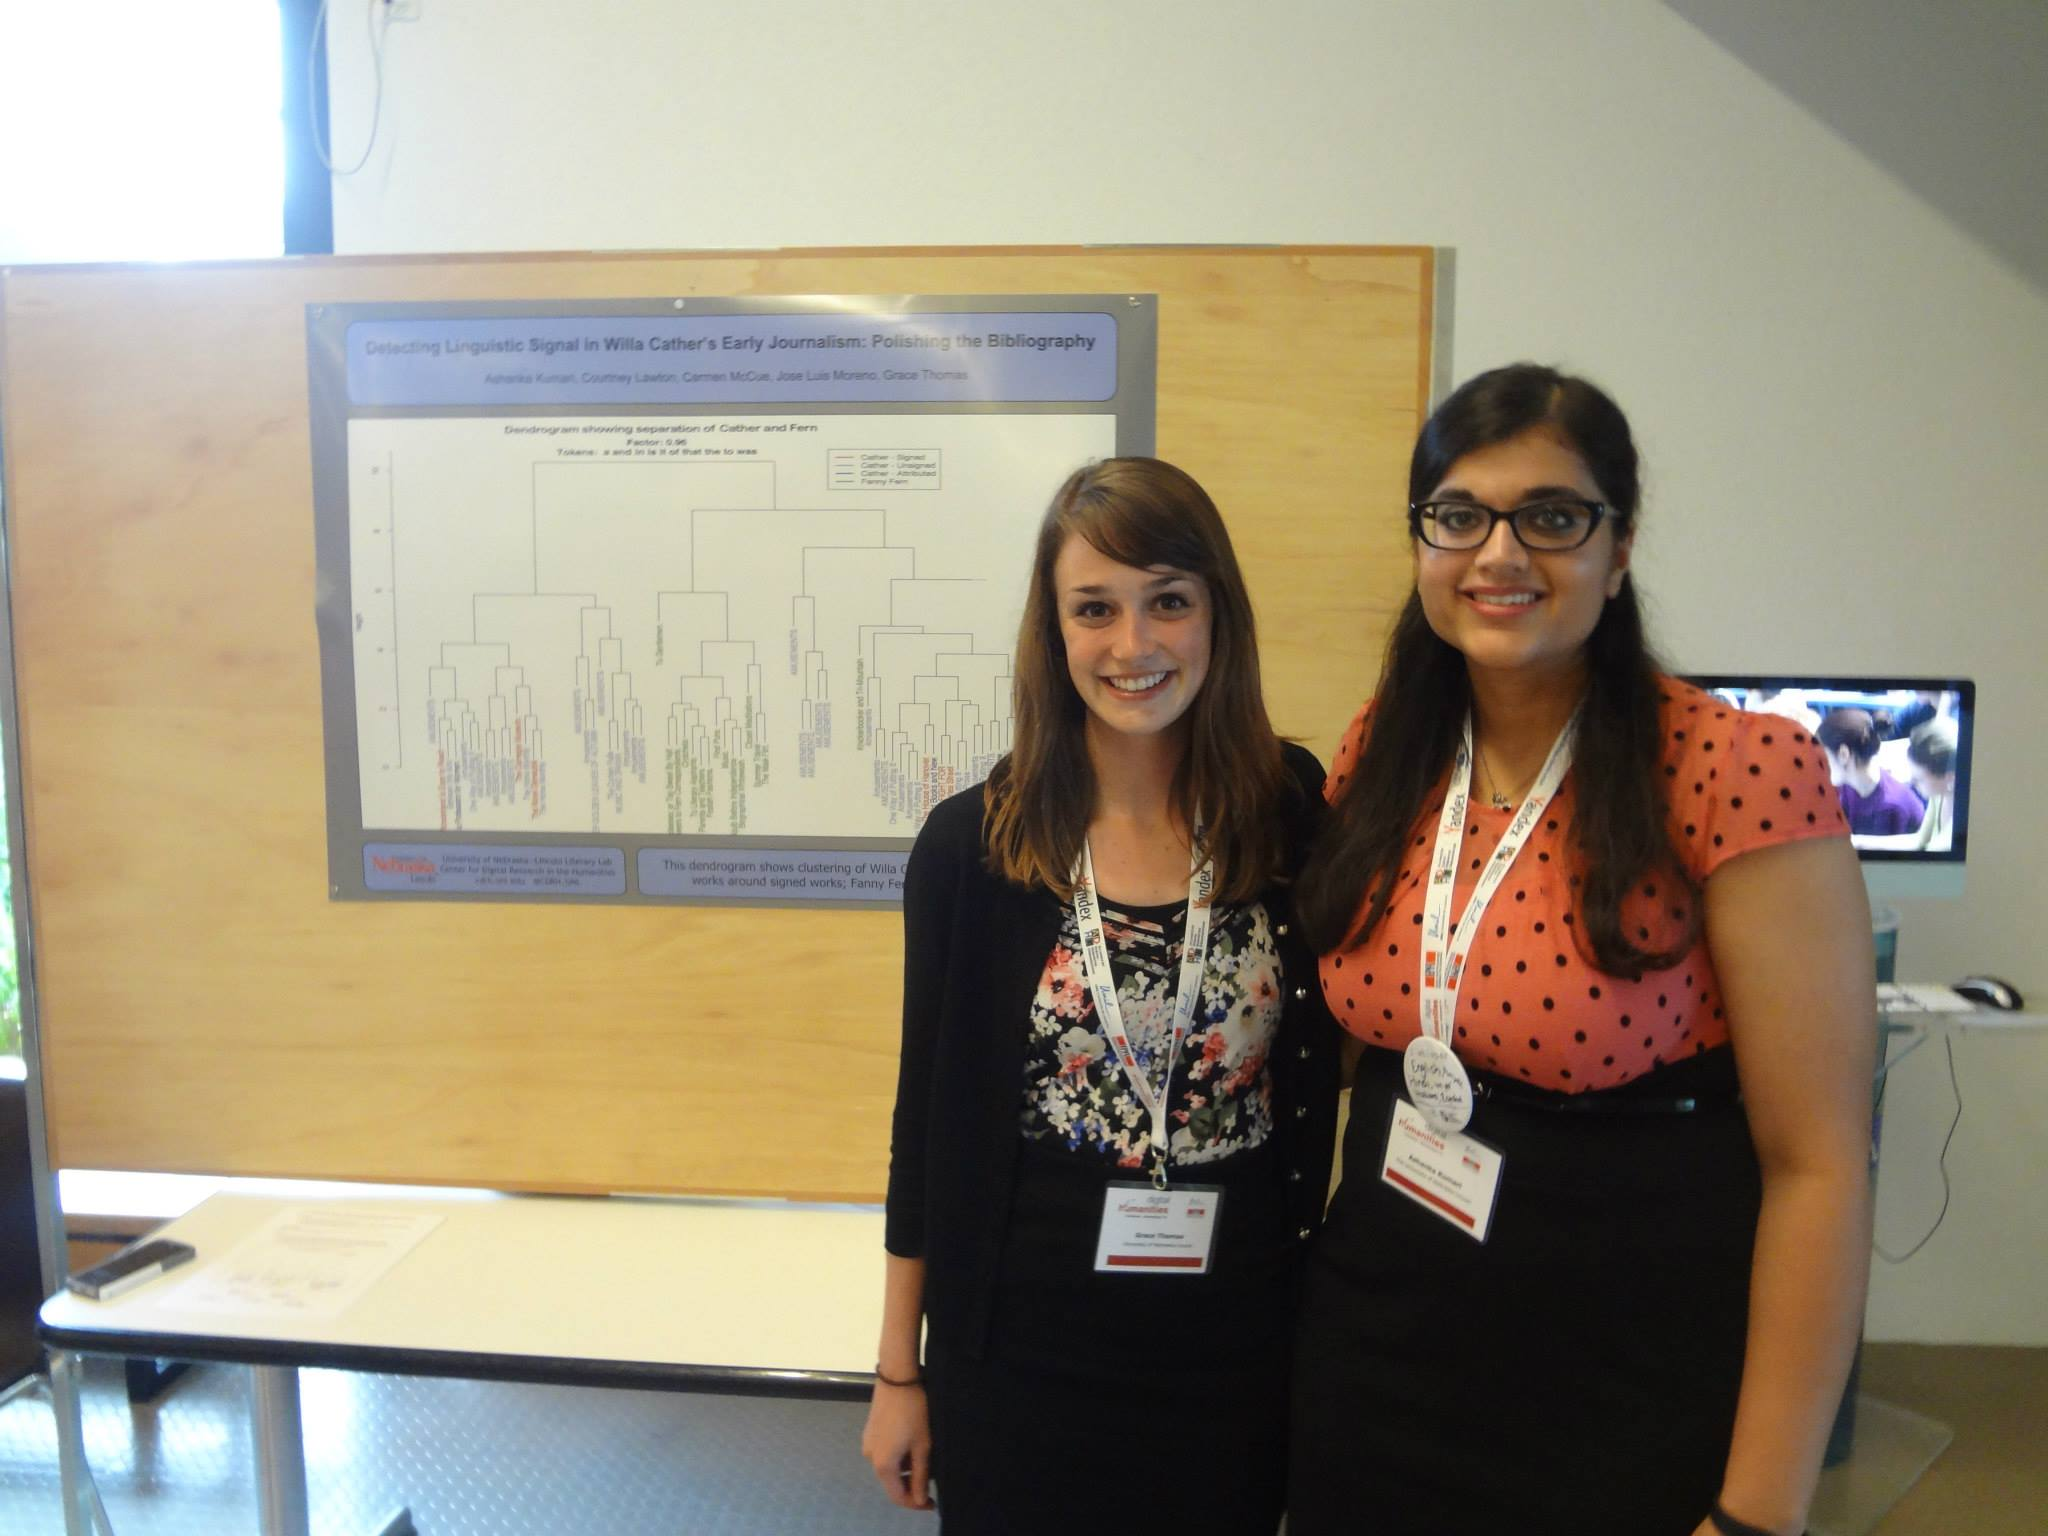 "Digital Humanities 2014 - Pictured here (left to right) Grace Thomas and Ashanka Kumari pose in front of their poster on detecting linguistic signal in Willa Cather's Early Journalism at the Digital Humanities 2014 conference.Kumari, Ashanka, Courtney Lawton, Carmen McCue, Joseba Moreno, and Grace Thomas. ""Detecting Linguistic Signal in Willa Cather's Early Journalism: Polishing the Bibliography."" Poster. Digital Humanities 2014. Lausanne, Switzerland. July 2014."